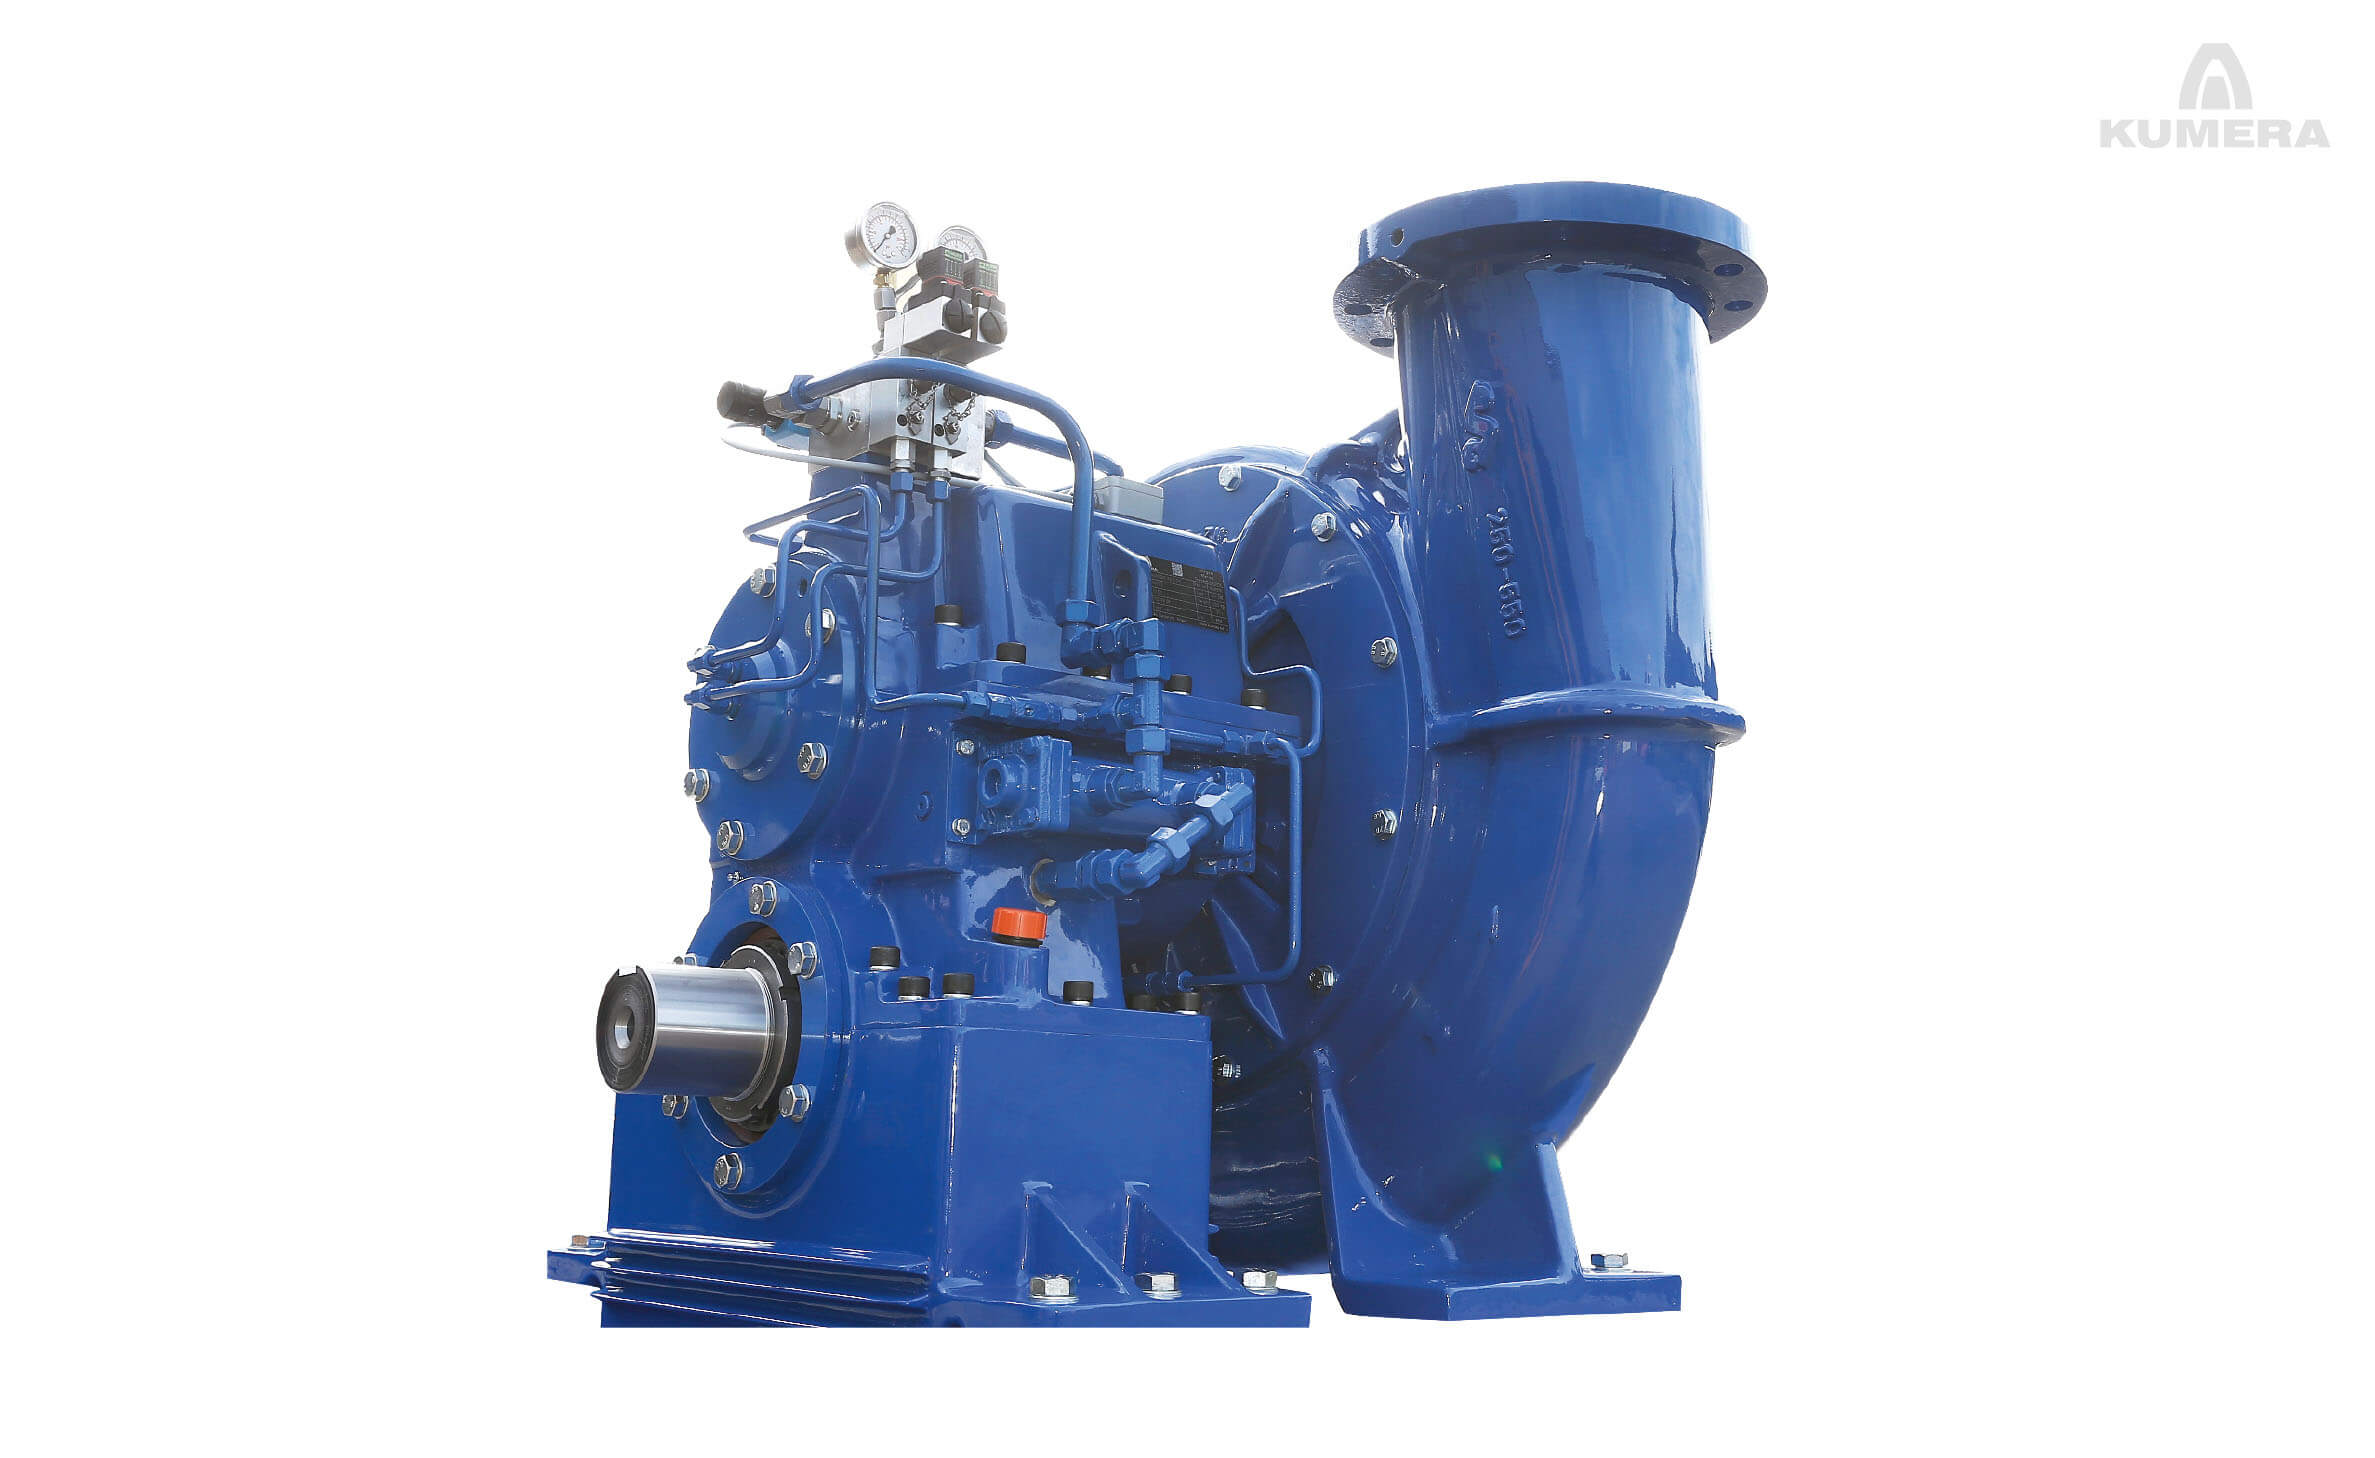 Kumera Custom Built Heavy-Duty Gearboxes for Shipping & Dredging Industry. Kumera Excavator Pumps, Jet Pumps, Winches, Generator Drives, Distribution Drives